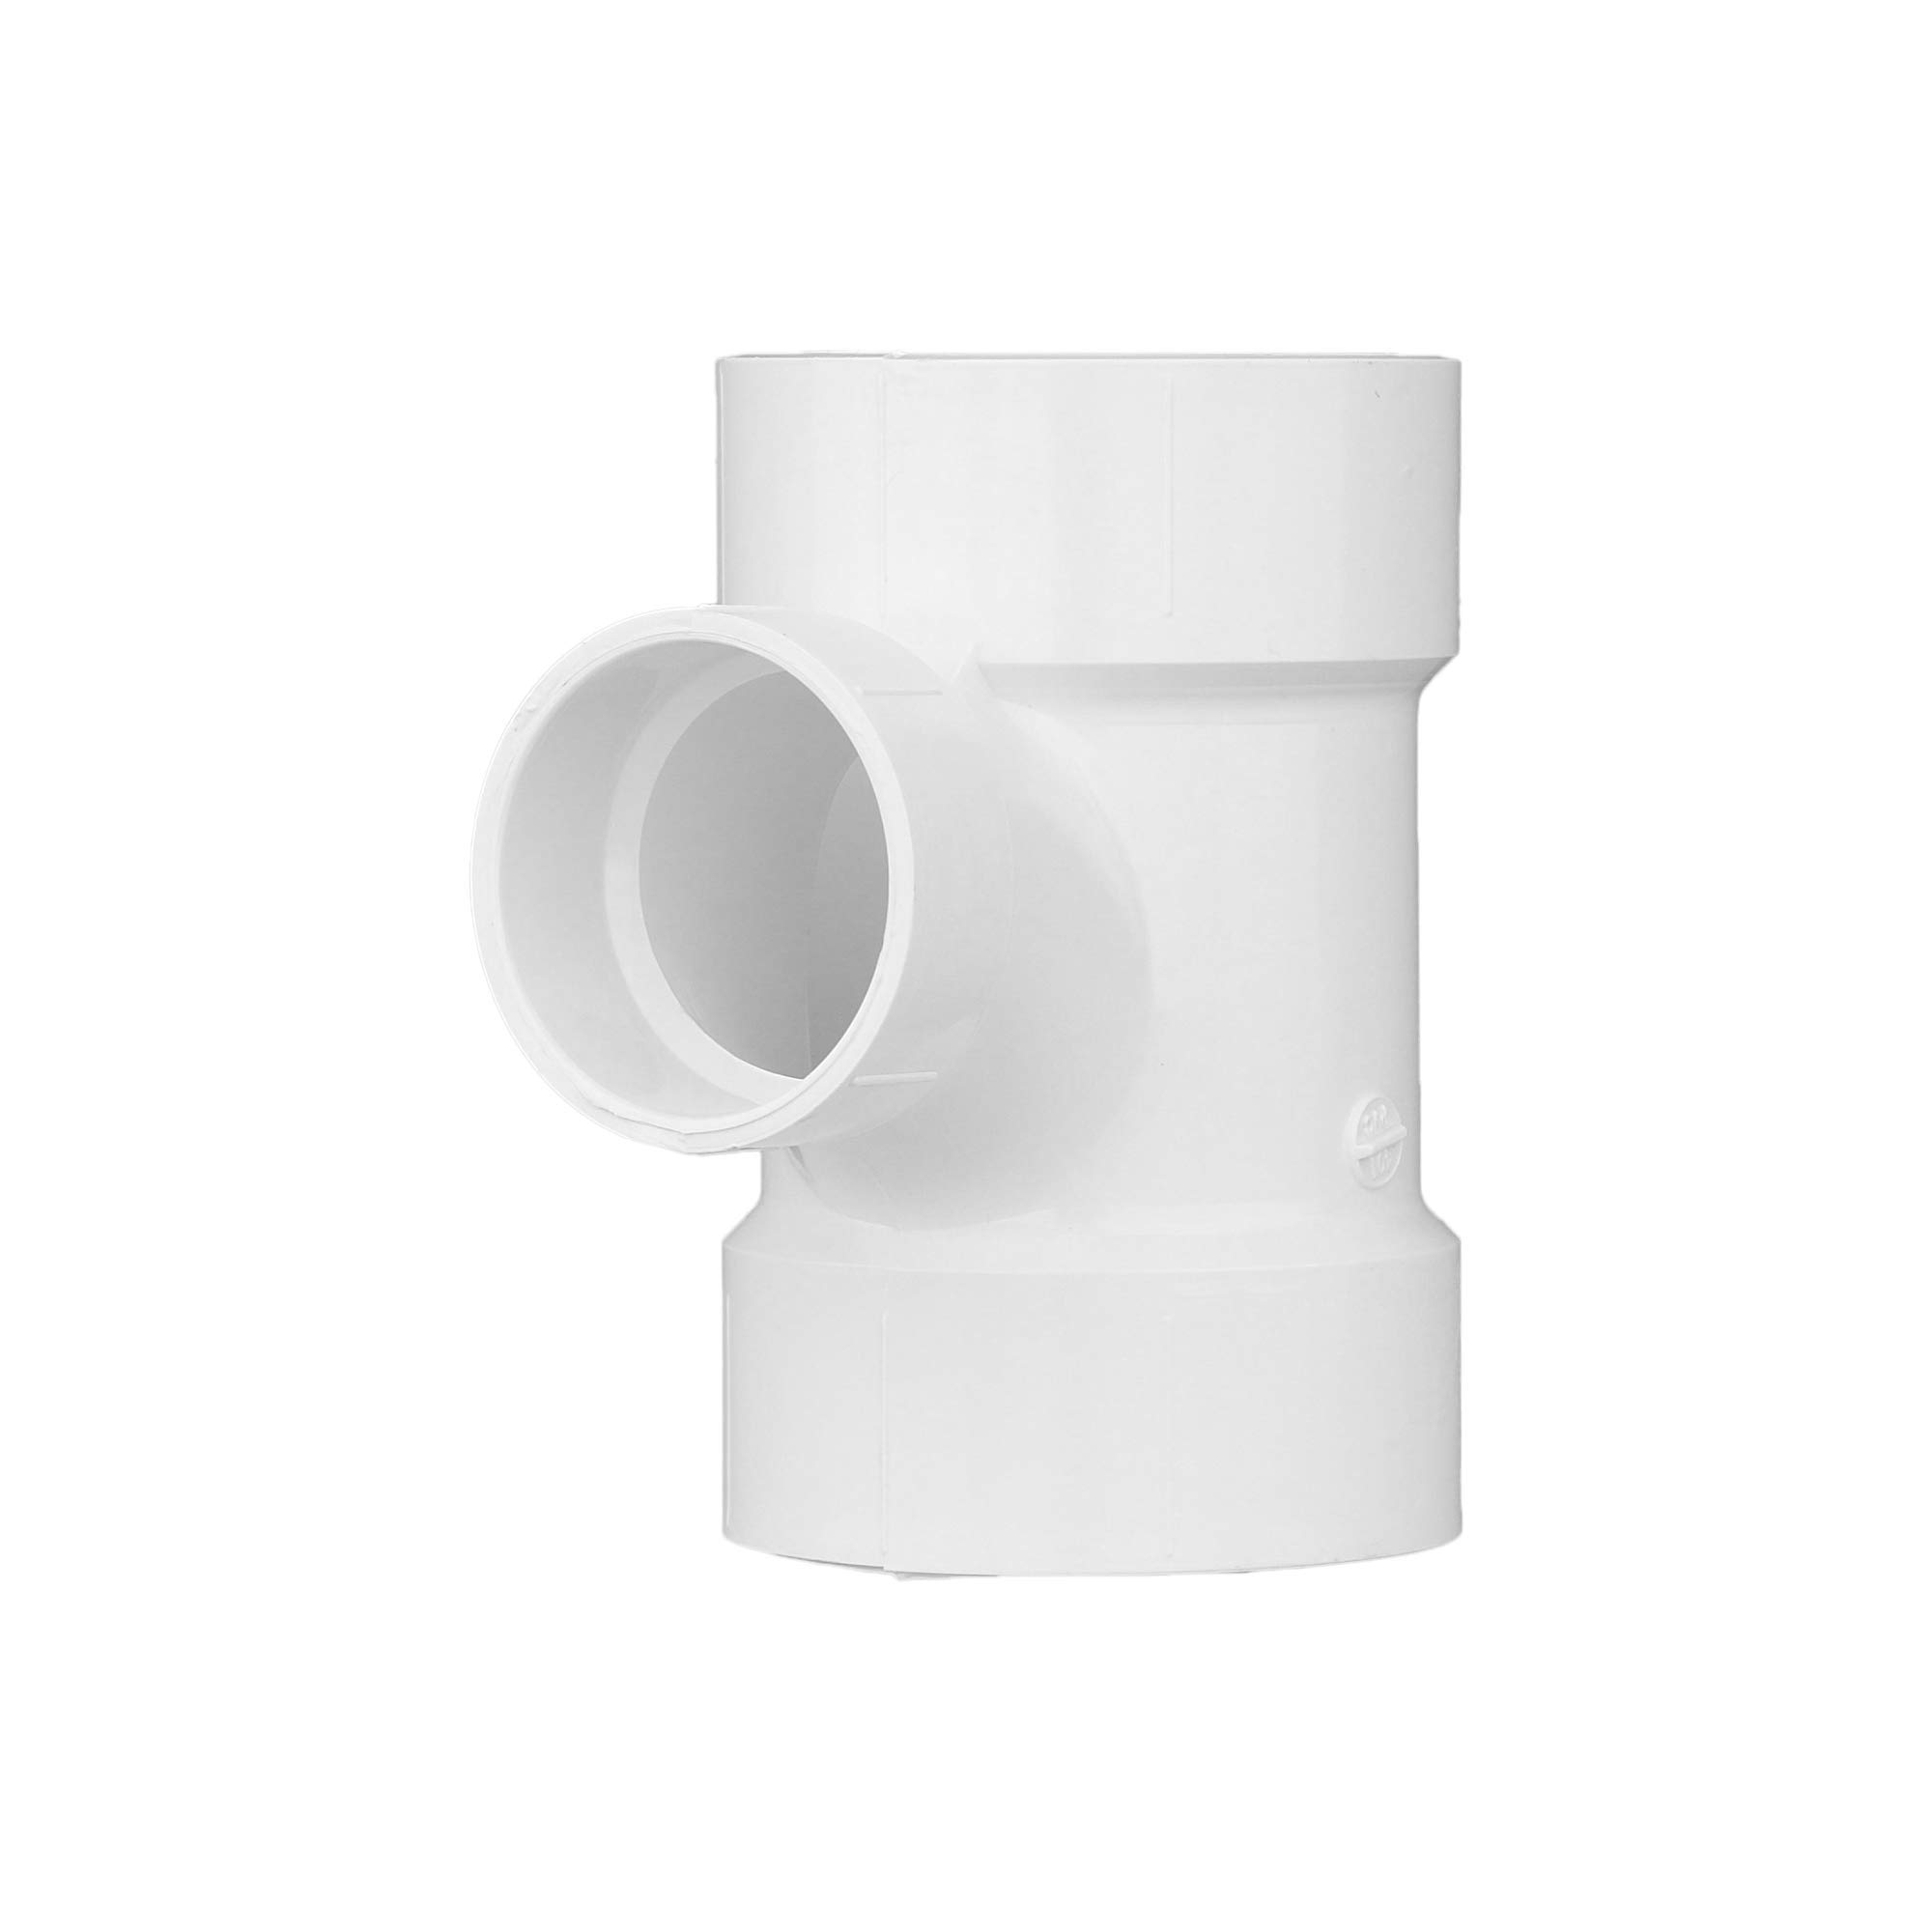 """Charlotte Pipe 3"""" X 3"""" X 2"""" Sanitary Tee Pipe Fitting - Reducing Schedule 40 PVC DWV (Drain, Waste and Vent) Durable, Easy to Install, and High Tensile for Home or Industrial Use (Single Unit)"""